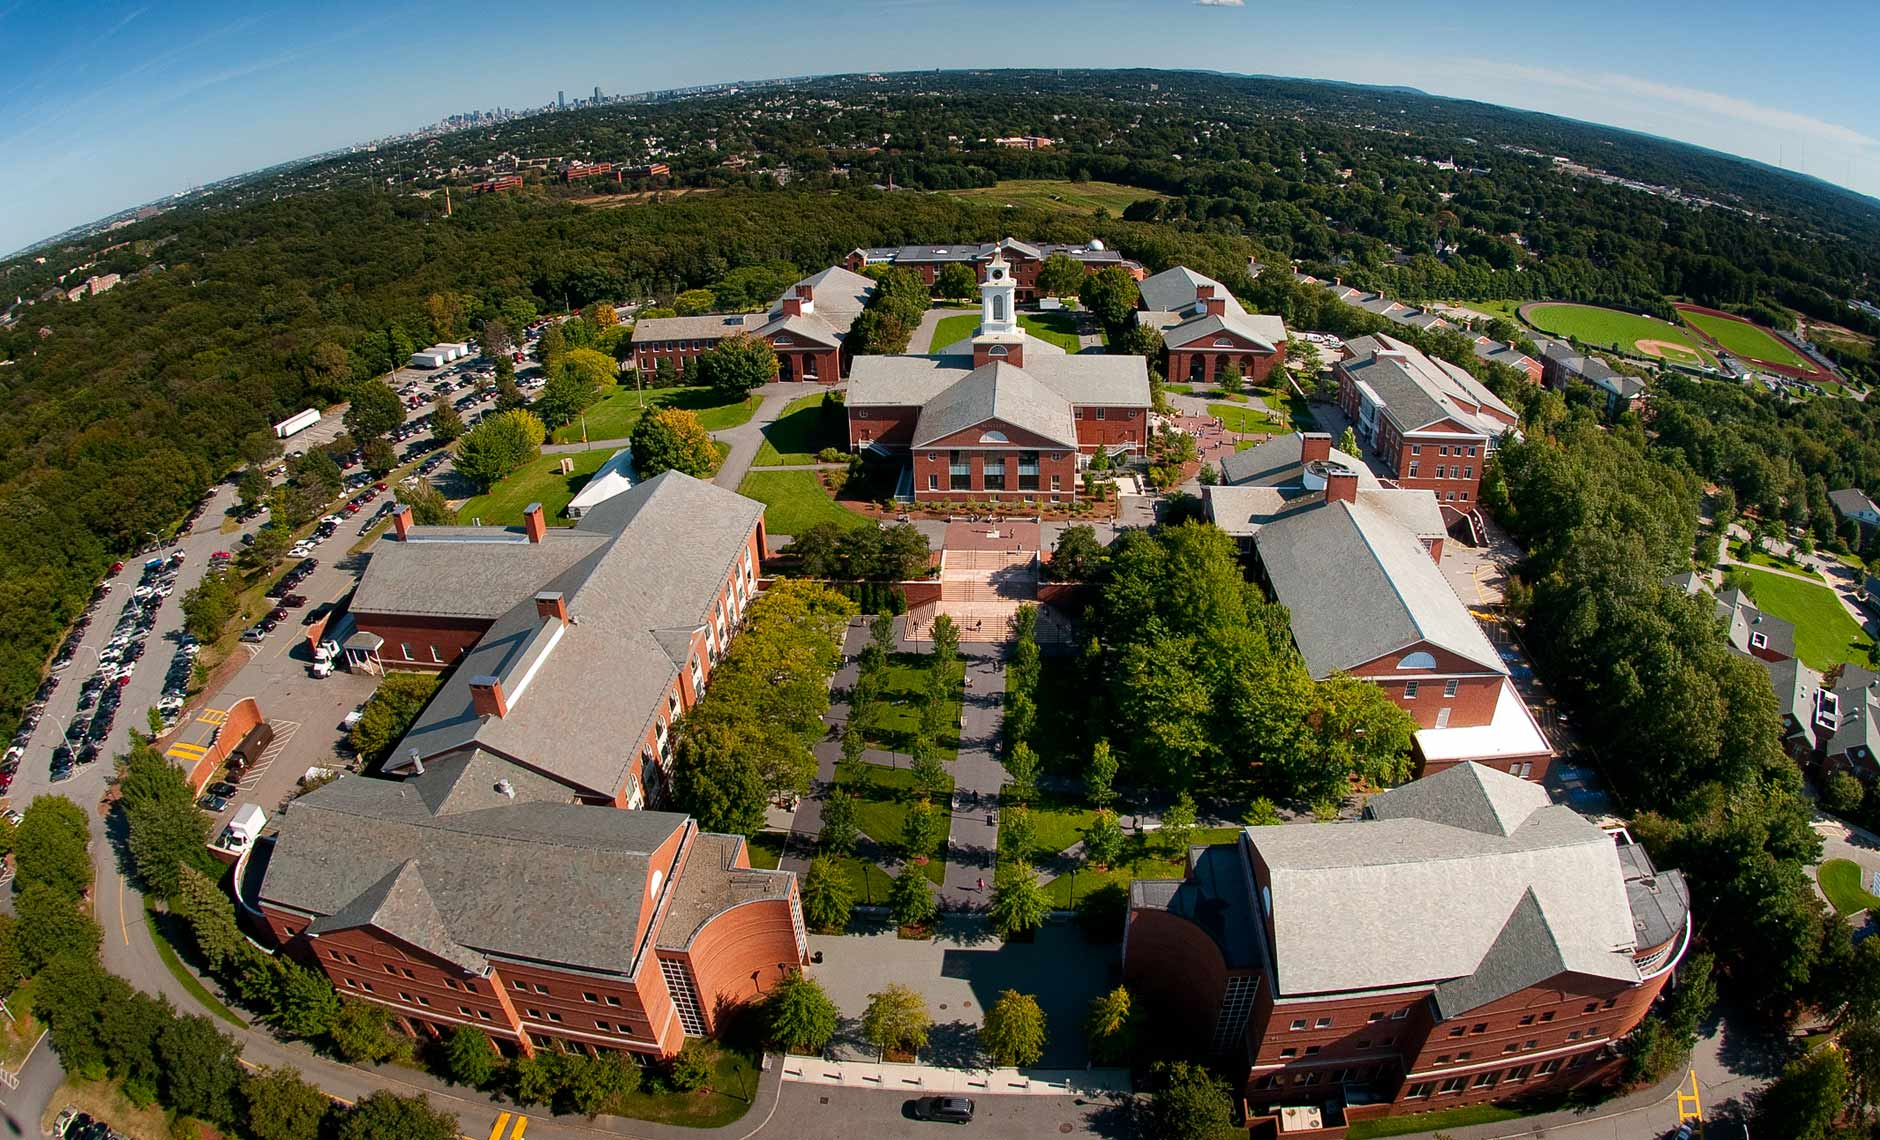 Aerial photograph of Bentley University located in Waltham MA